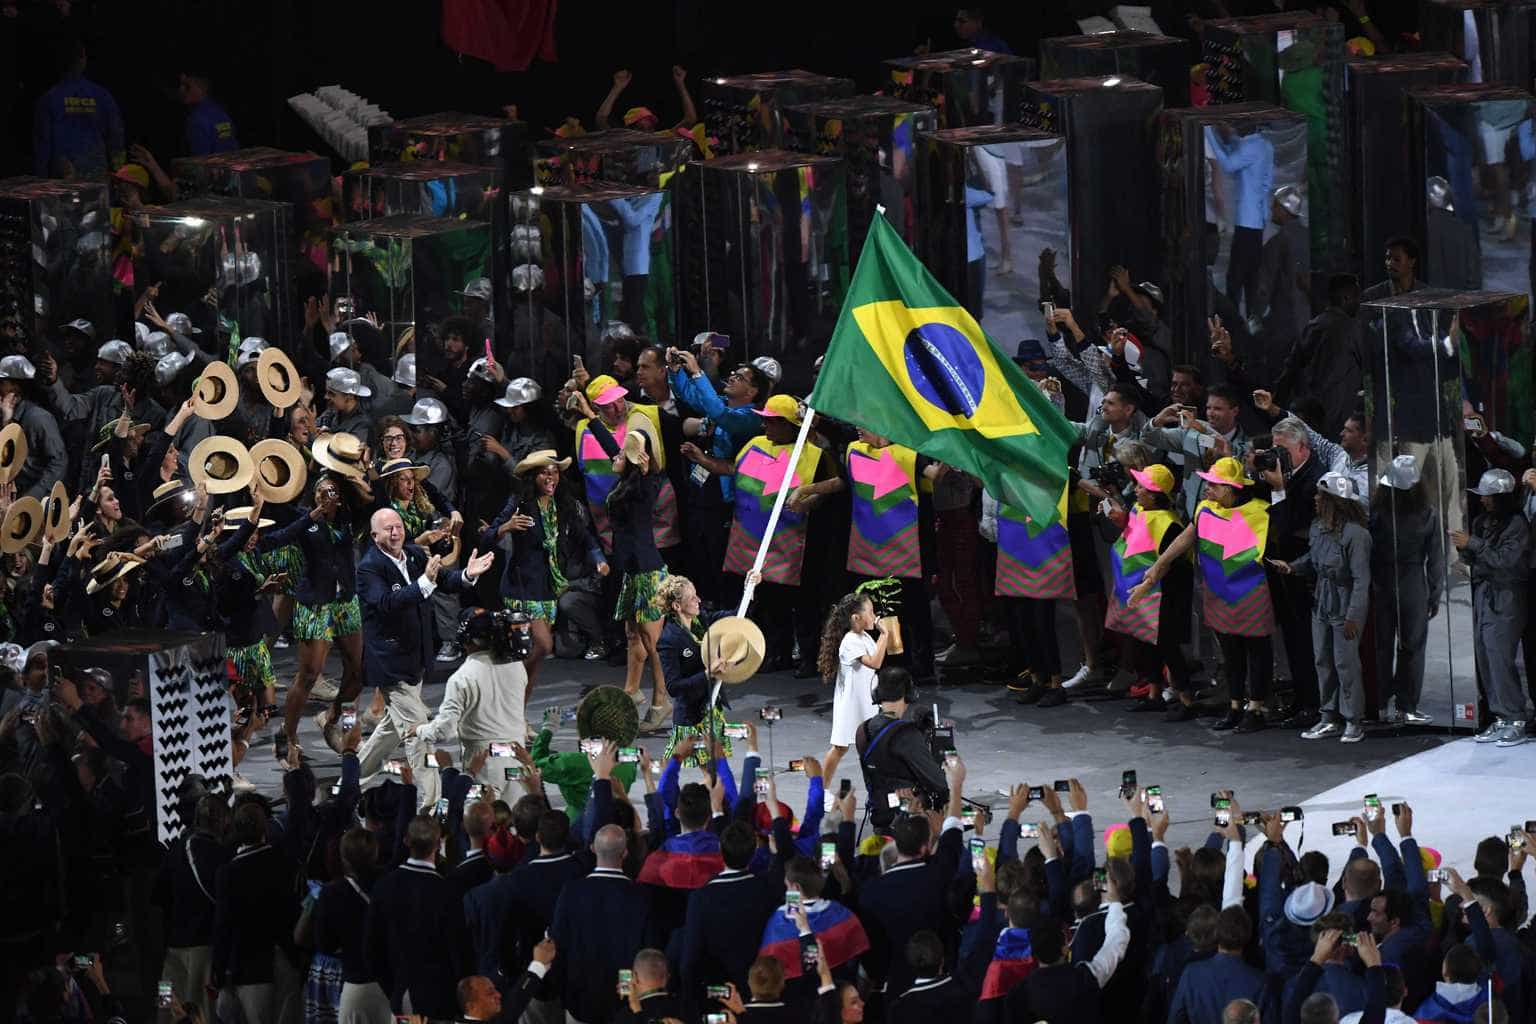 A_scene_from_the_Rio_2016_Olympic_Games_Opening_Ceremony